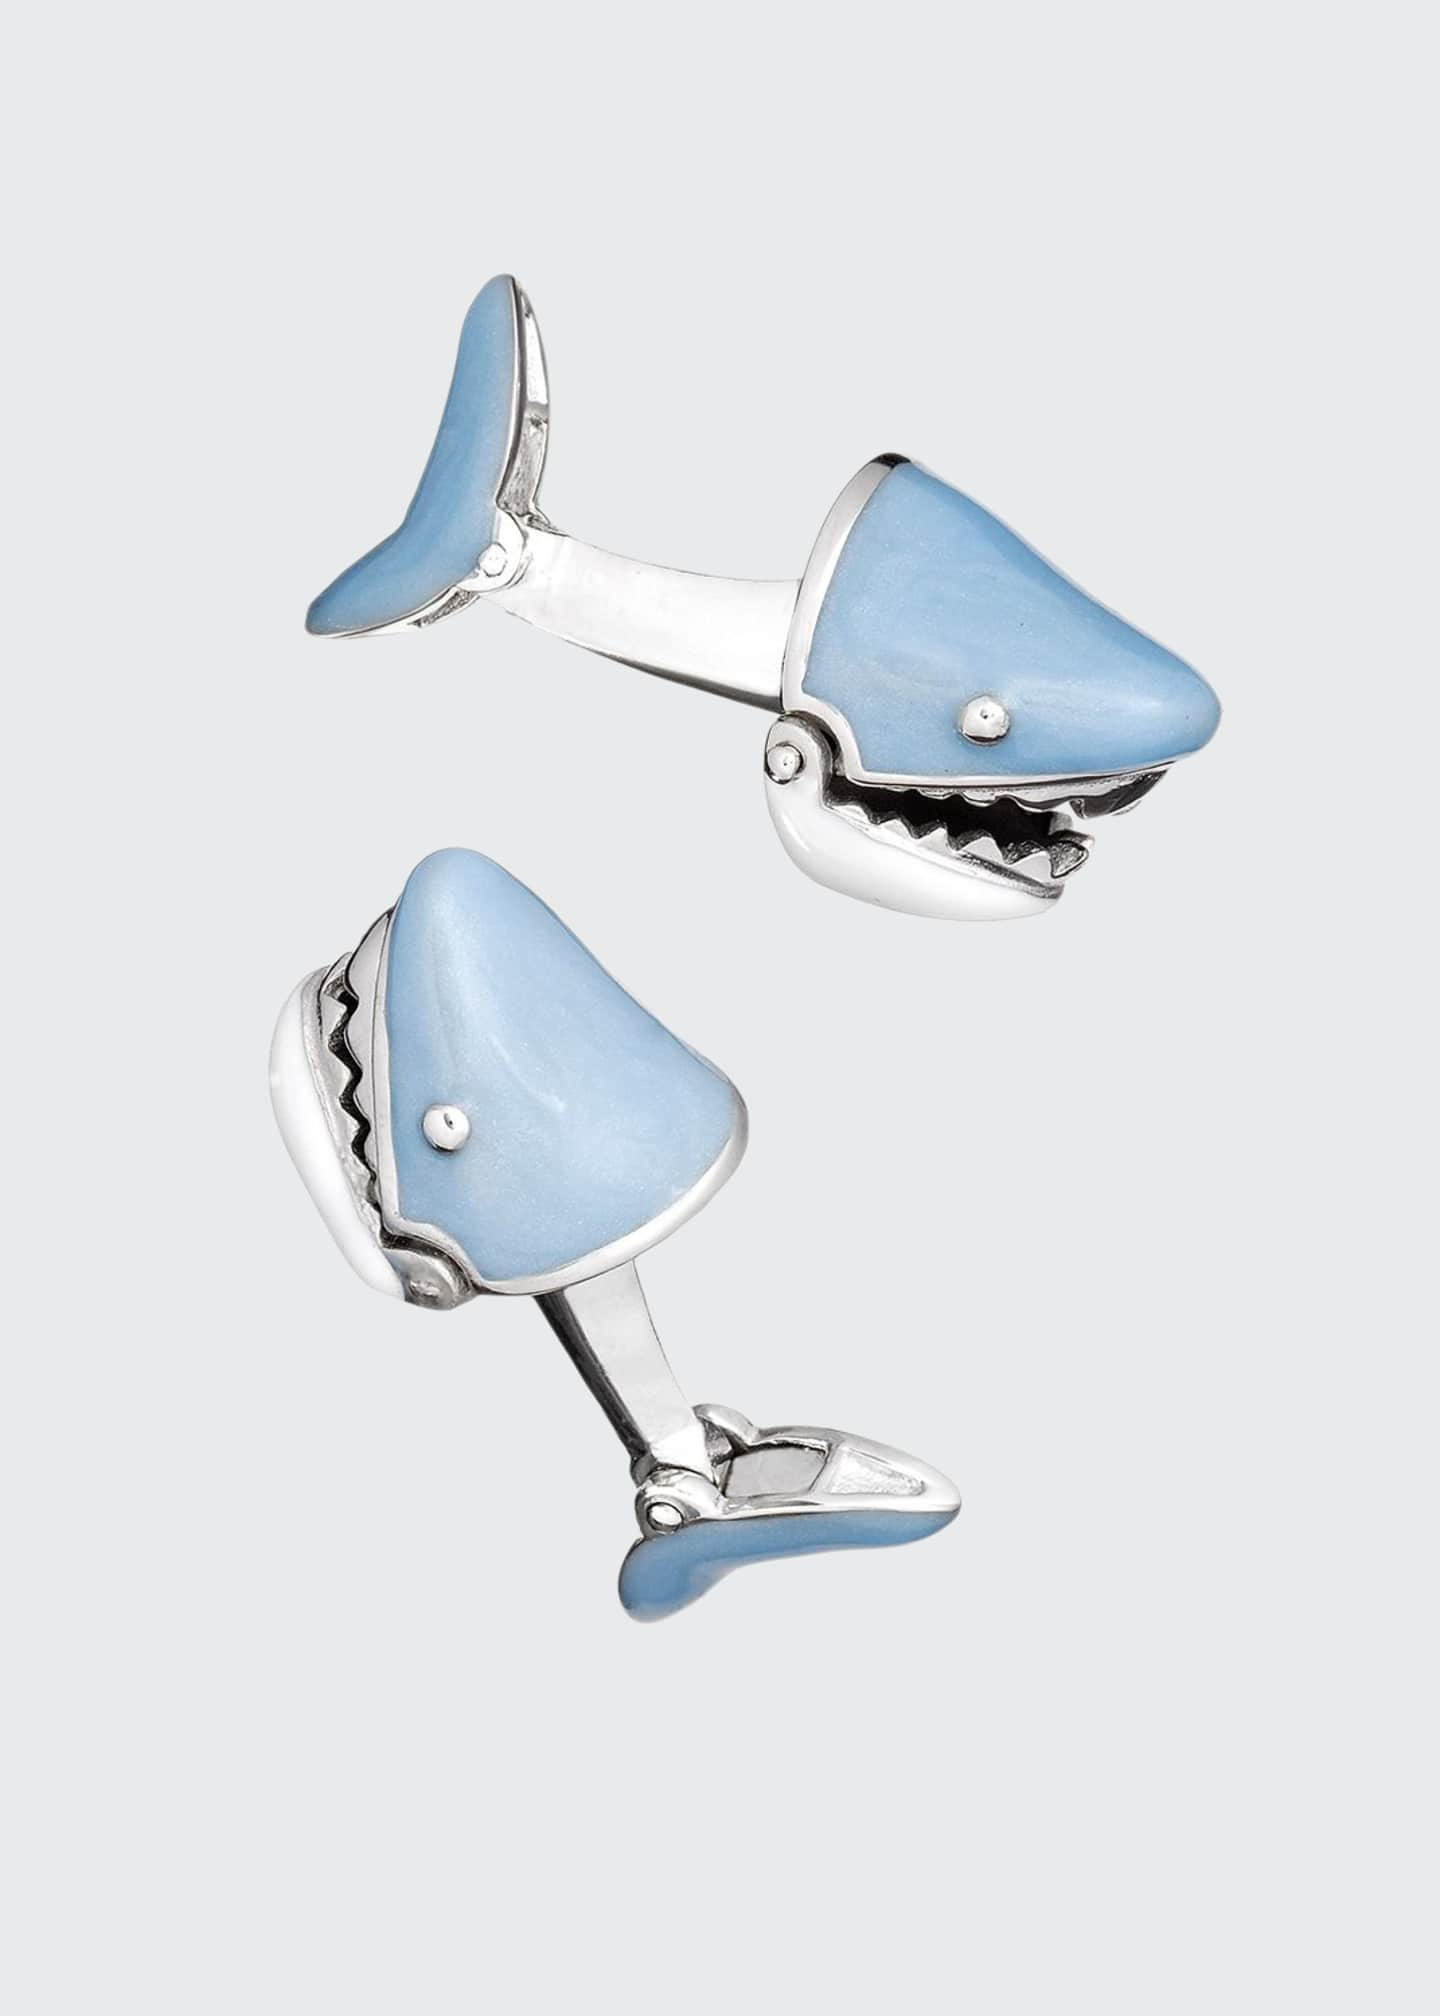 Movable Shark Face Cuff Links